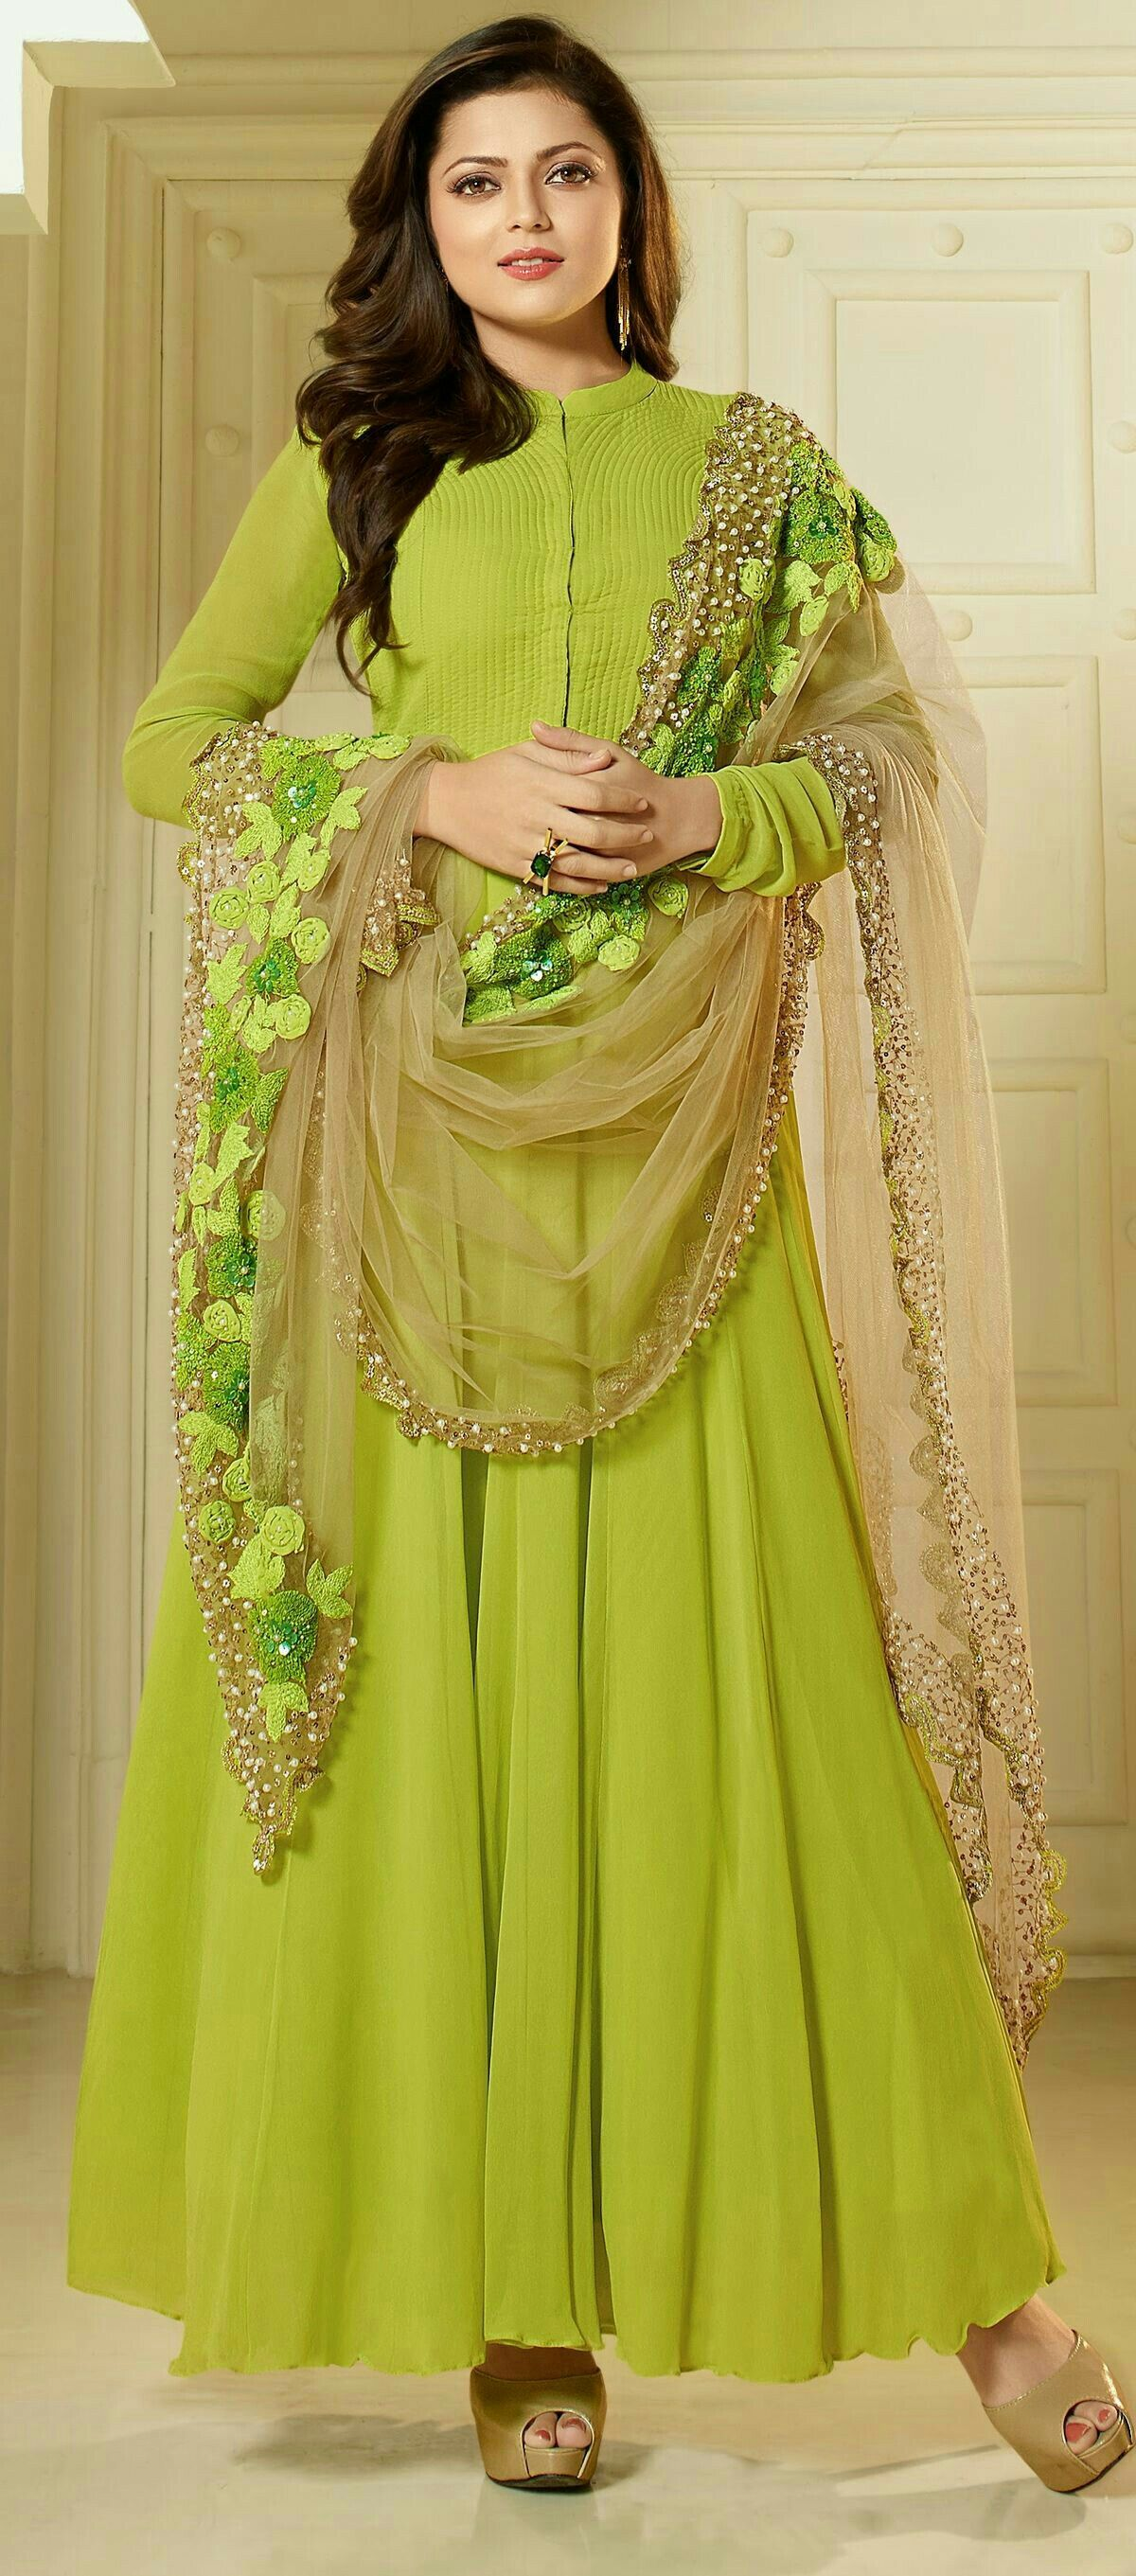 bacc21258009 Long green and gold dress